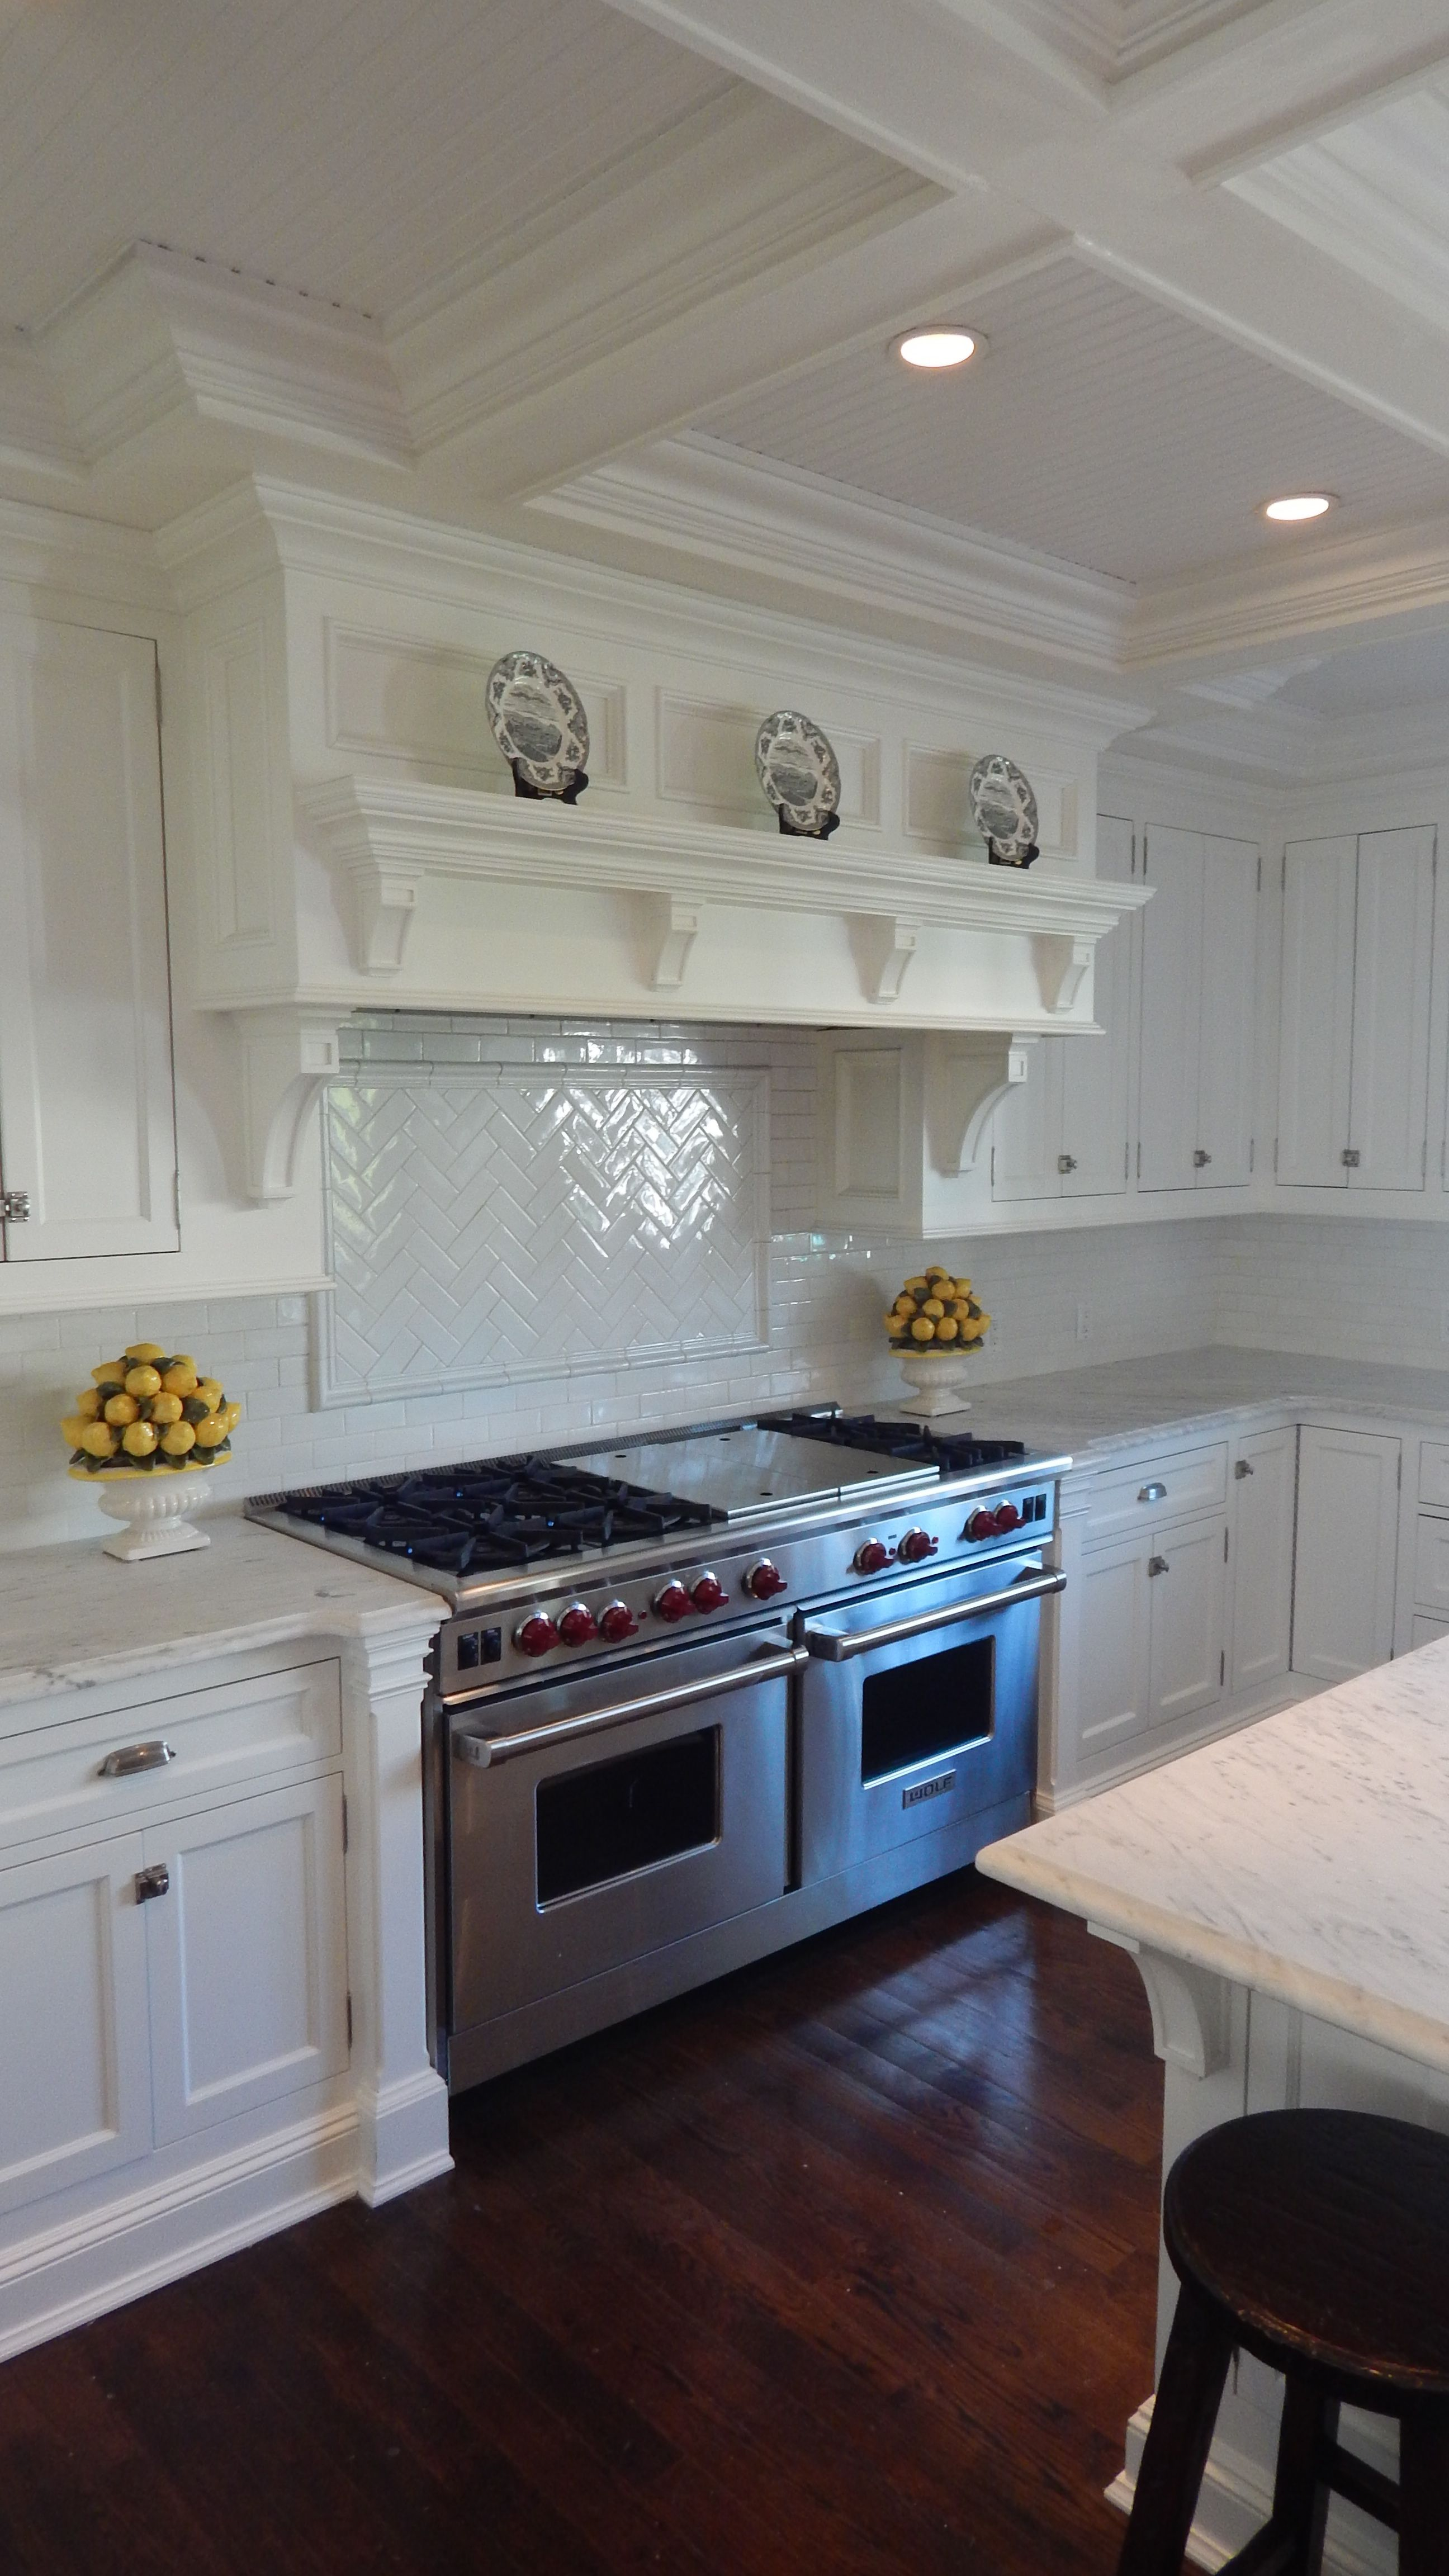 Best Extensive Millwork Timeless By Shd Kitchen Cabinets For 640 x 480